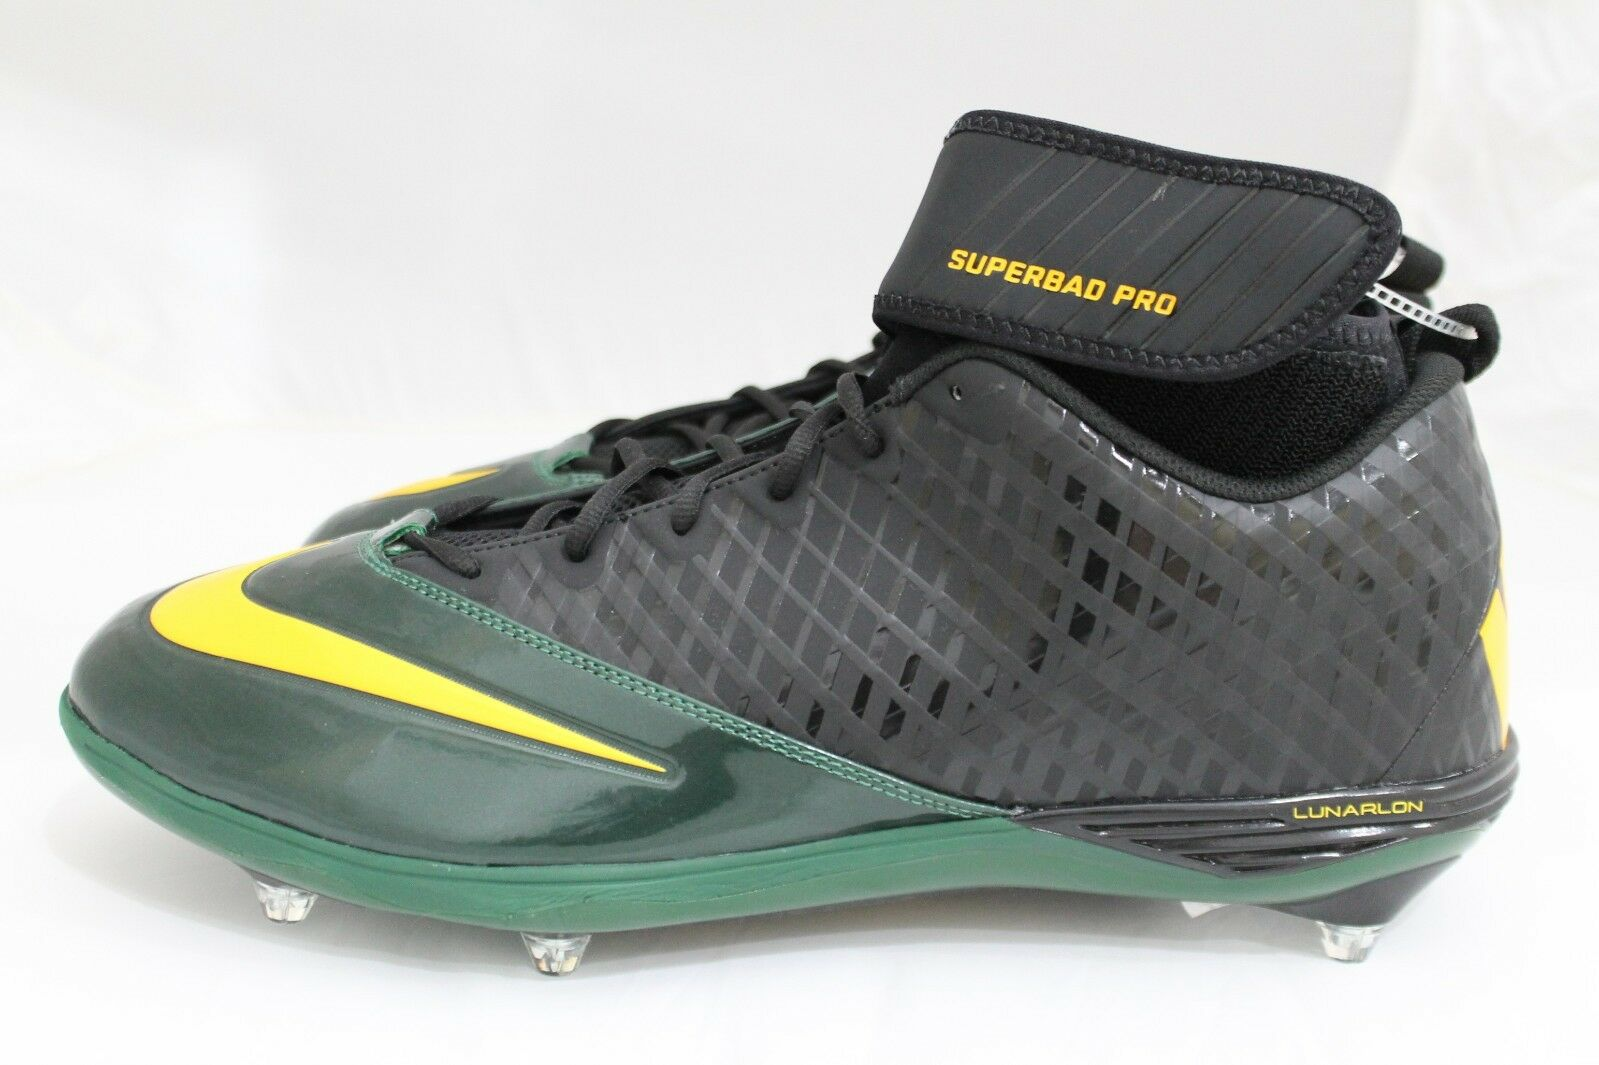 NEW Nike Superbad Pro Lunarlon--size 17, dark green and gold--544762-012